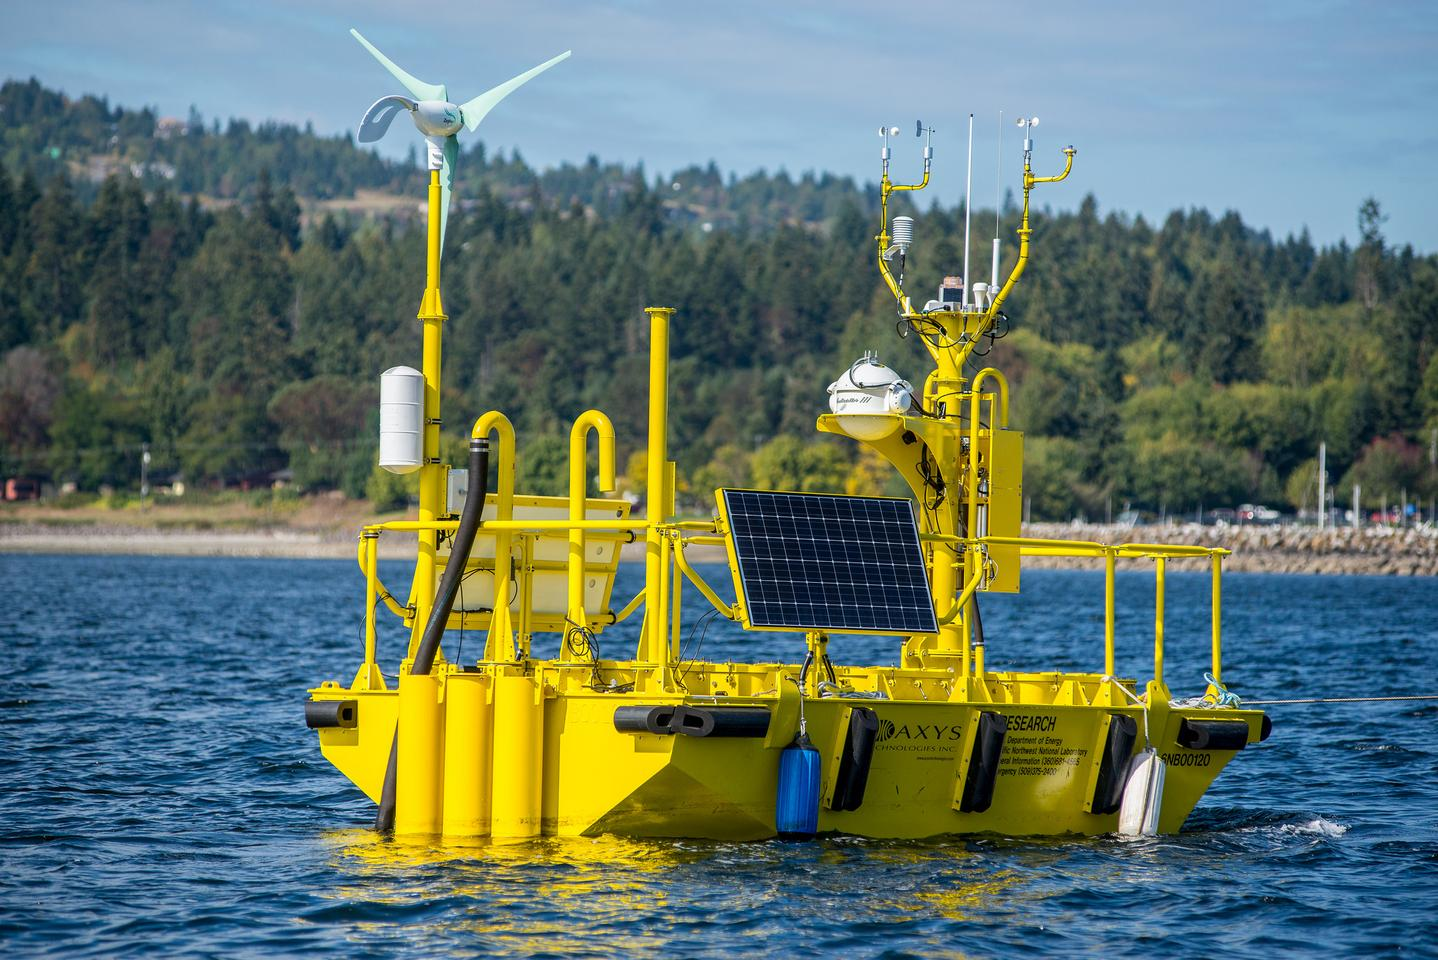 This large buoy has an array of advanced scientific instruments to measure offshore wind energy potential (Photo: PNNL)